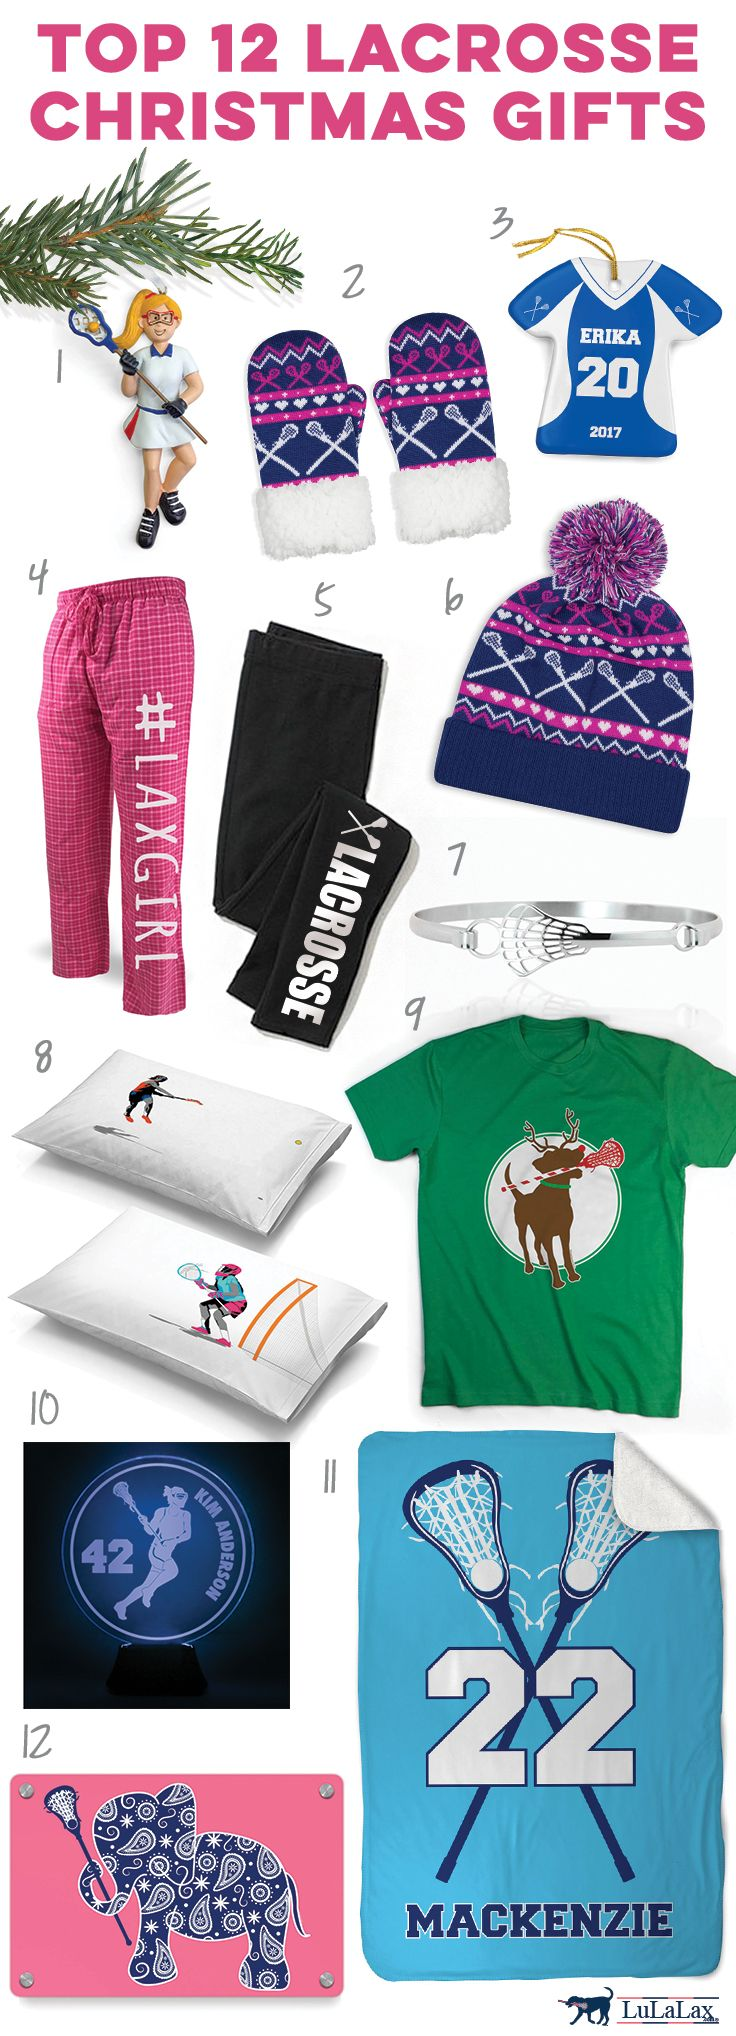 Check out these great holiday lacrosse gift ideas! Click to see more details on our top 12 girls lacrosse player gift ideas. Unique lacrosse Christmas gifts ...